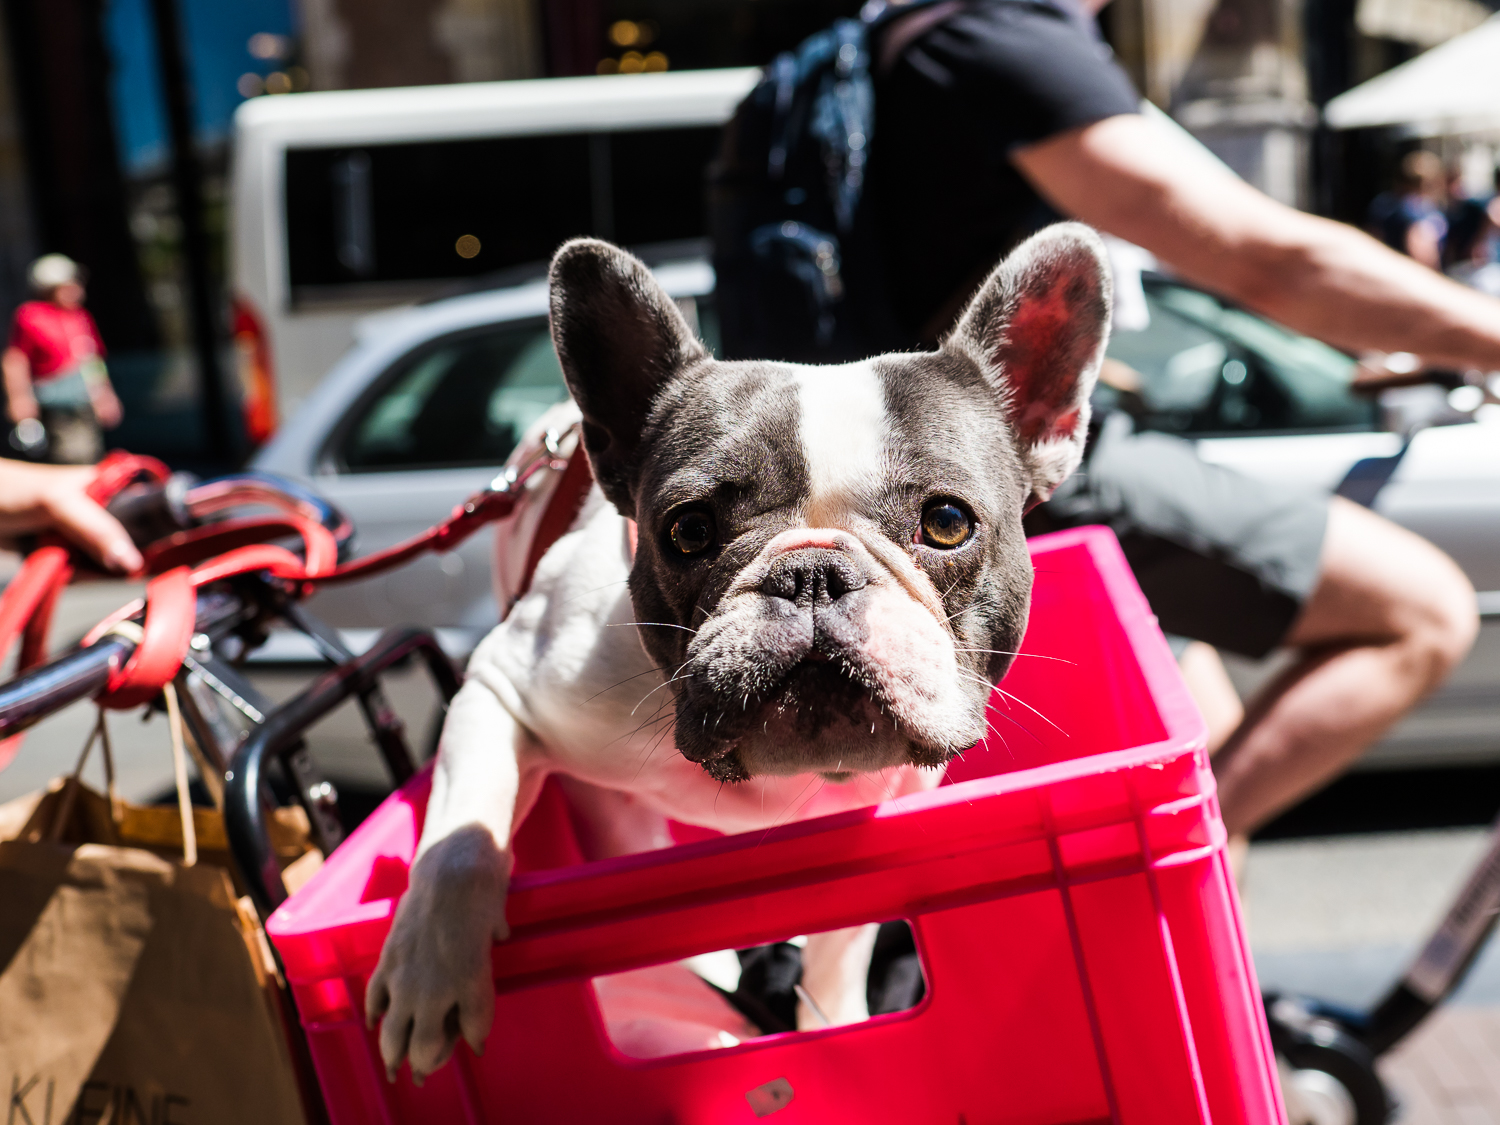 This is Holland, this is Amsterdam! Dogs are transported in many ways, preferably by bike in the city center. I made this photo in July 2018 on a very warm day. In the summer I see myself post-processing more photos in color than I do in the winter. This French bulldog deserves a place in my   Street Dogs   series.  Olympus OM-D E-M1 Mark 2 with Olympus M.ZUIKO 17mm 1:1.2 PRO